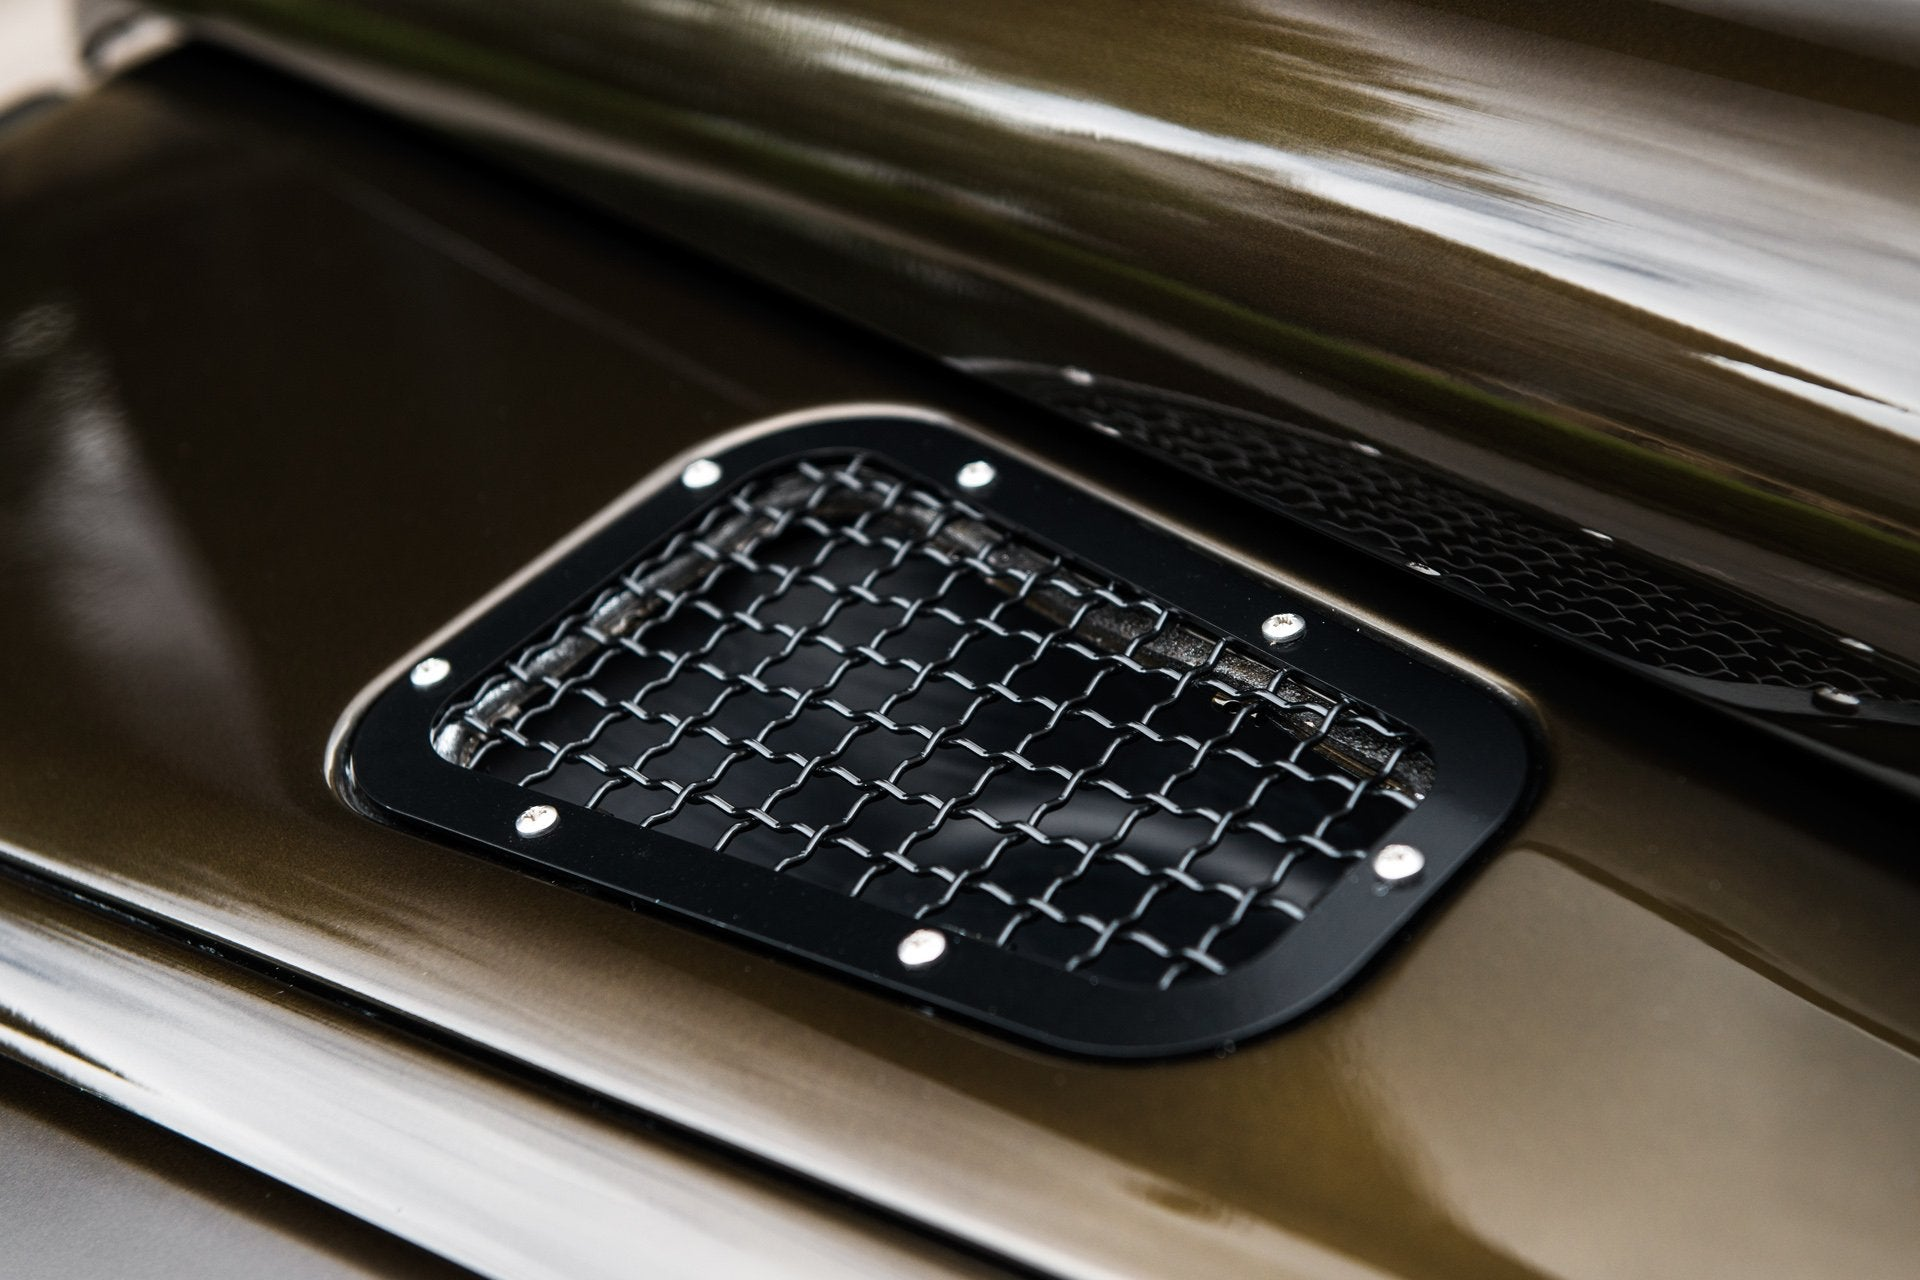 Land Rover Defender 110 (1991-2016) Bonnet Vents With Stainless Steel Mesh (Pair) by Chelsea Truck Company - Image 2415